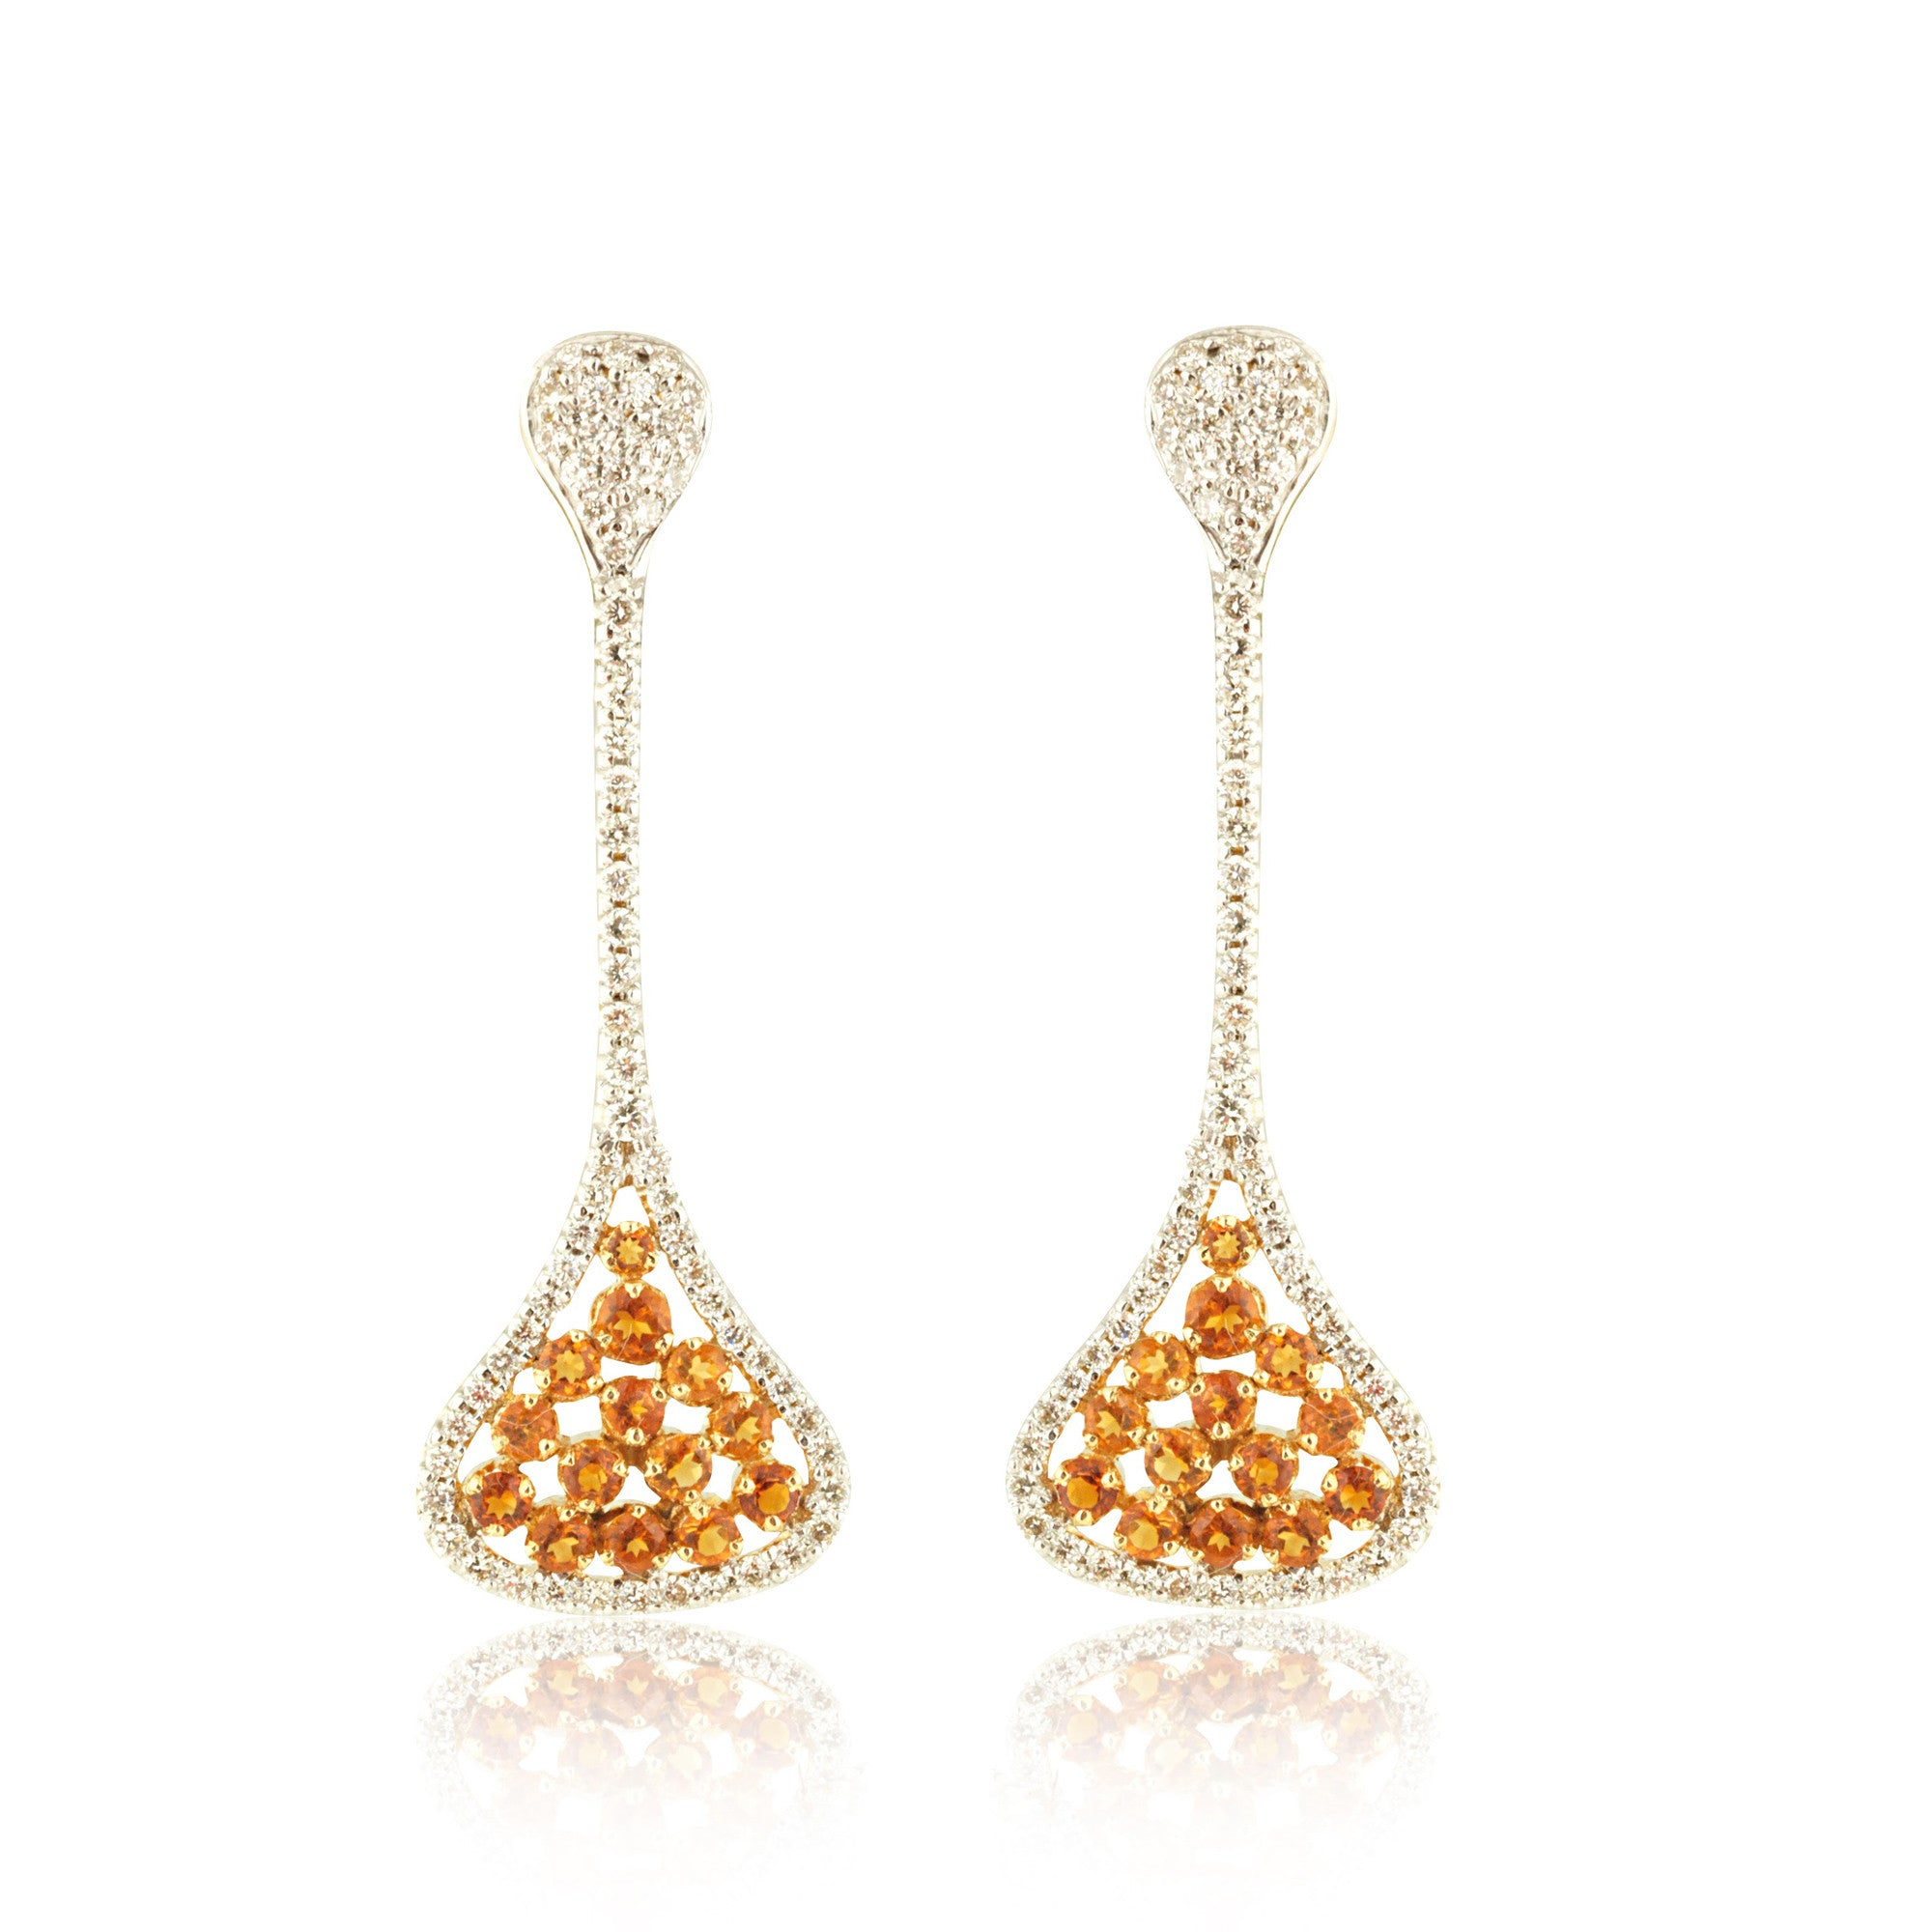 Narrow Diamond with Citrine Drops